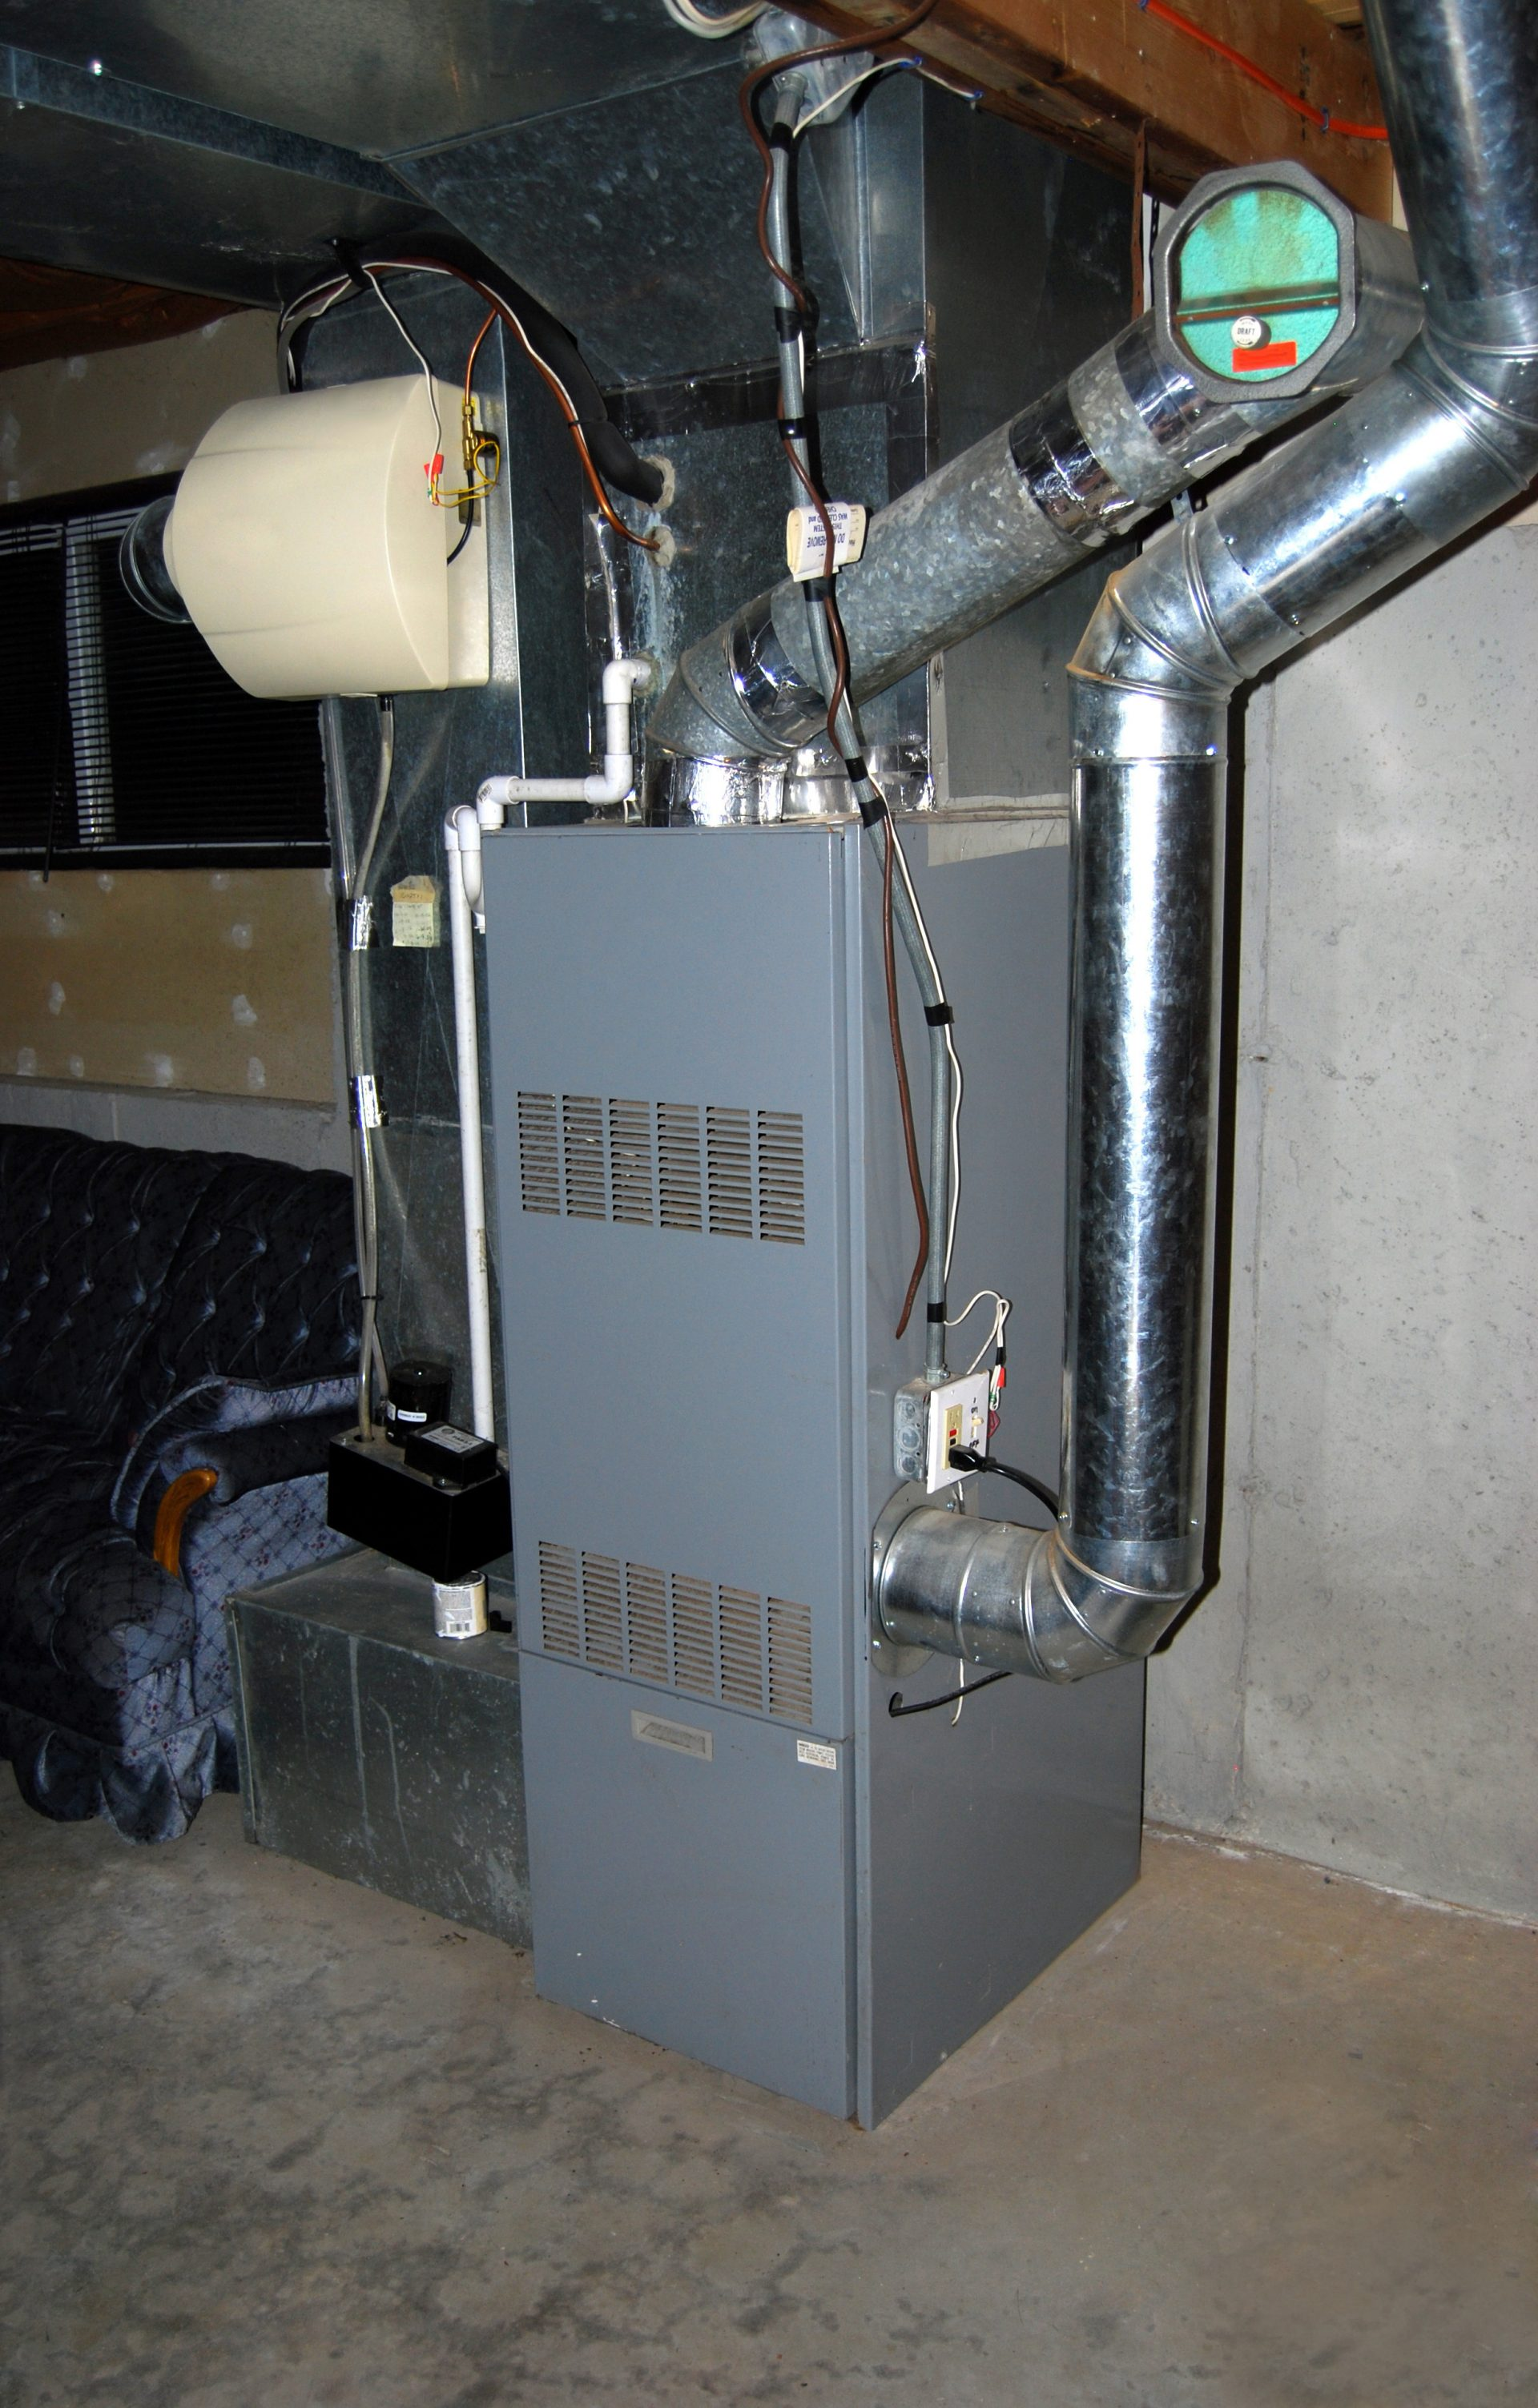 Residential fuel oil furnace